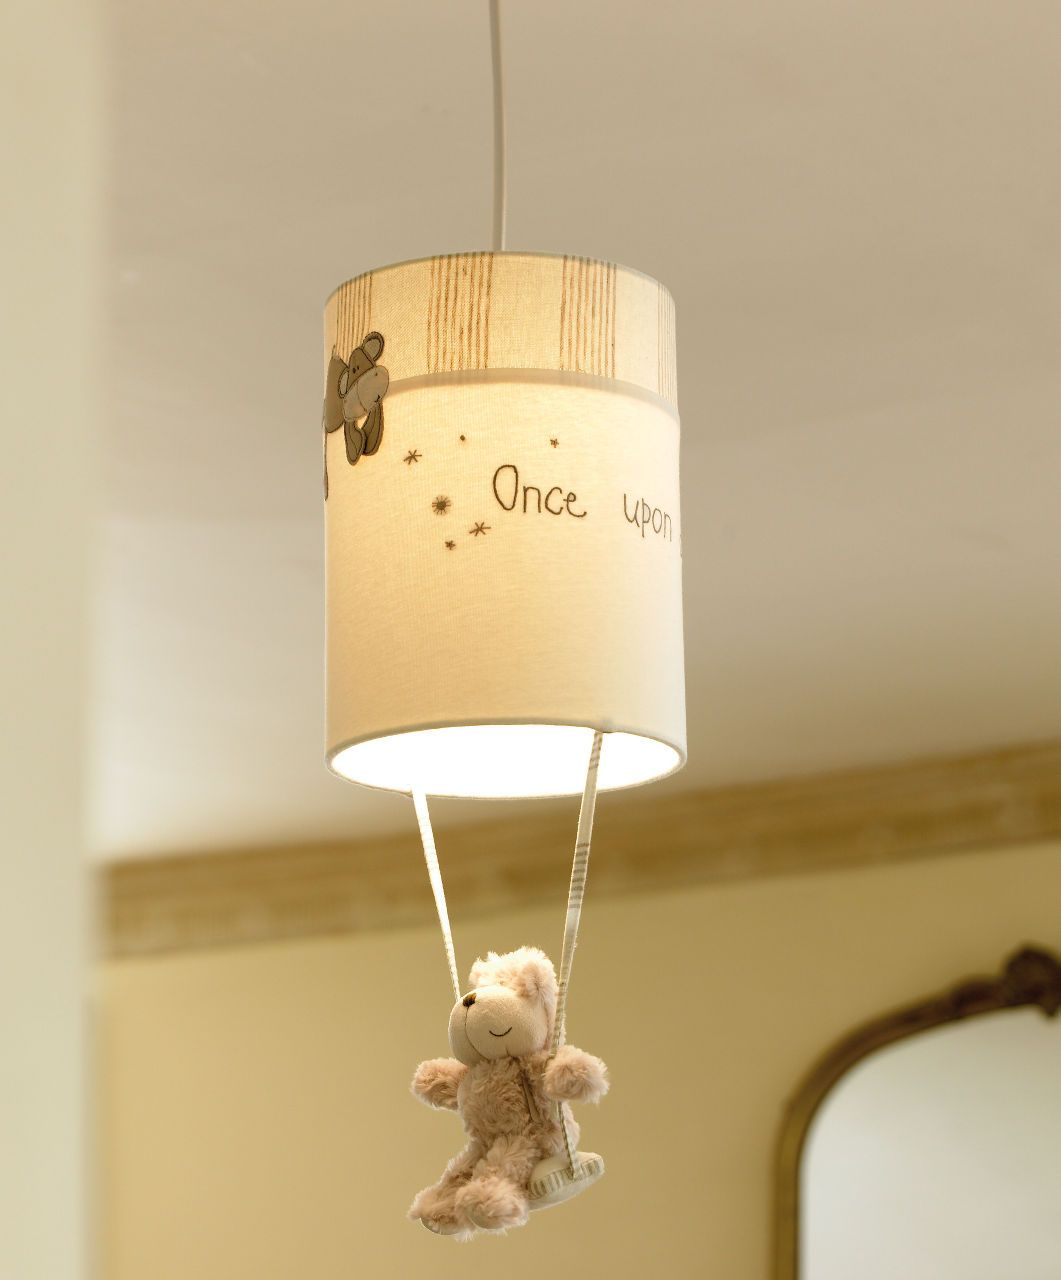 Once upon a time lampshade nursery accessories mamas papas baby registry once upon a time lampshade nursery mozeypictures Images